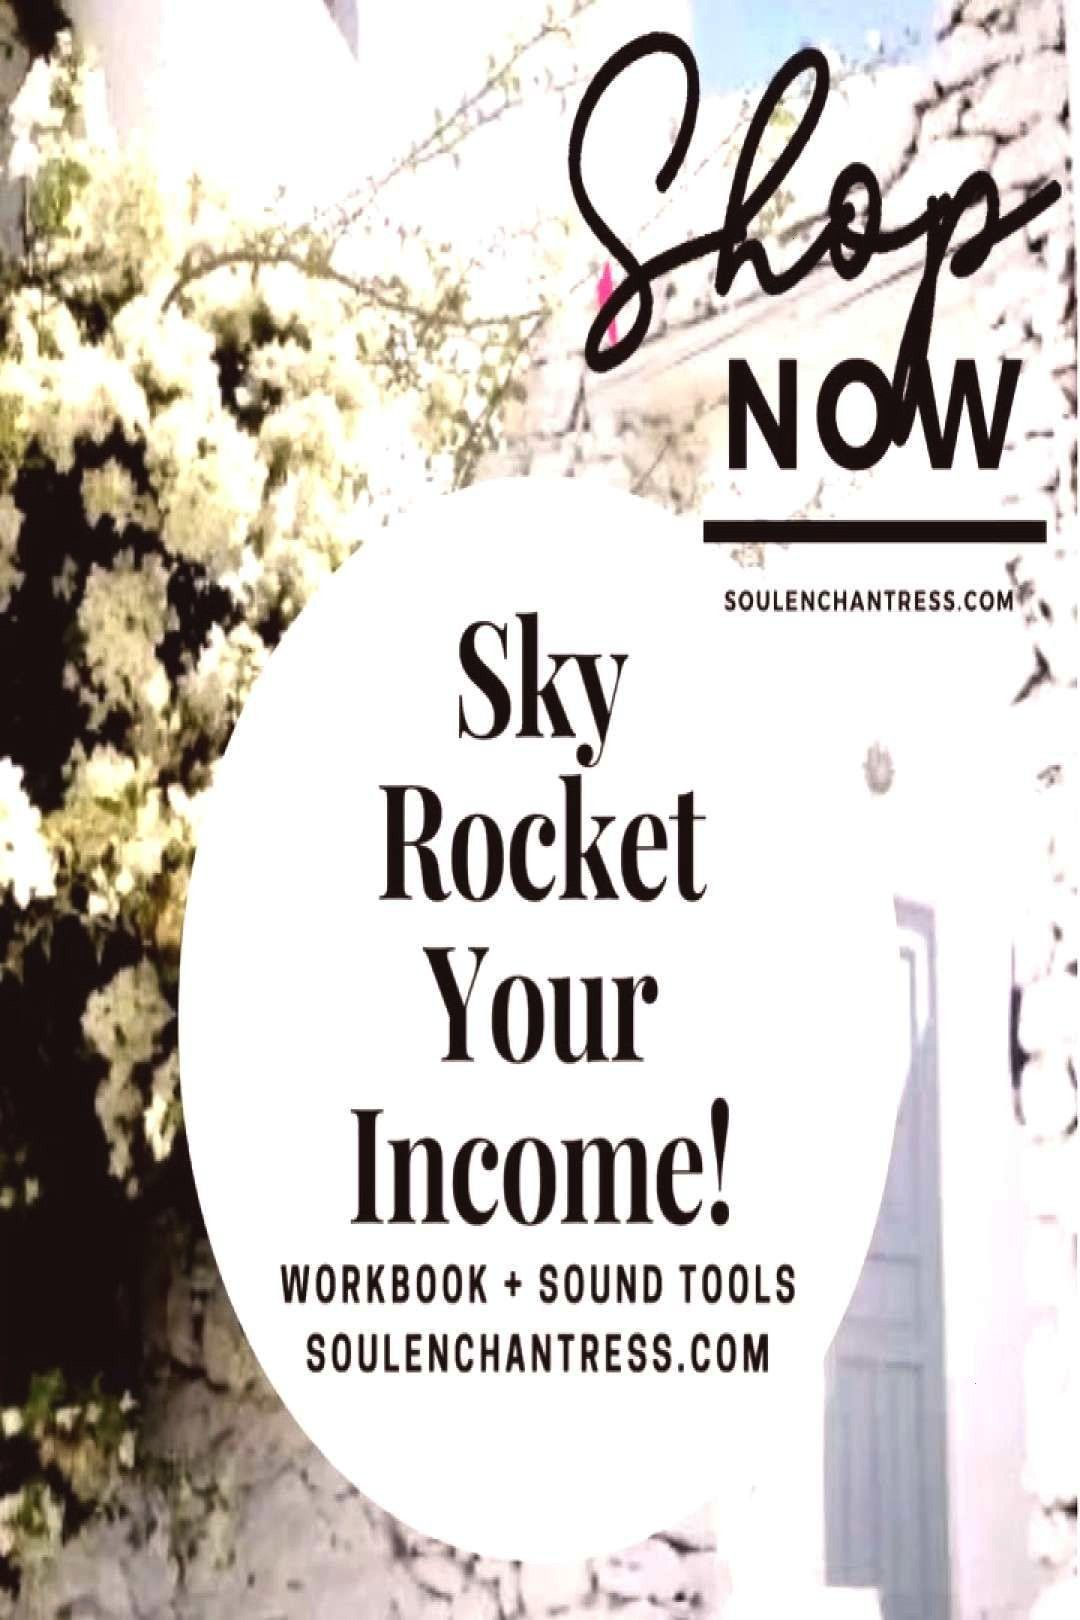 an Energetic Vibration that will Allow You to Sky Rocket YYou can find How to make more money and more on our websiteCreate an Energetic ViCreate an Energetic Vibration t...